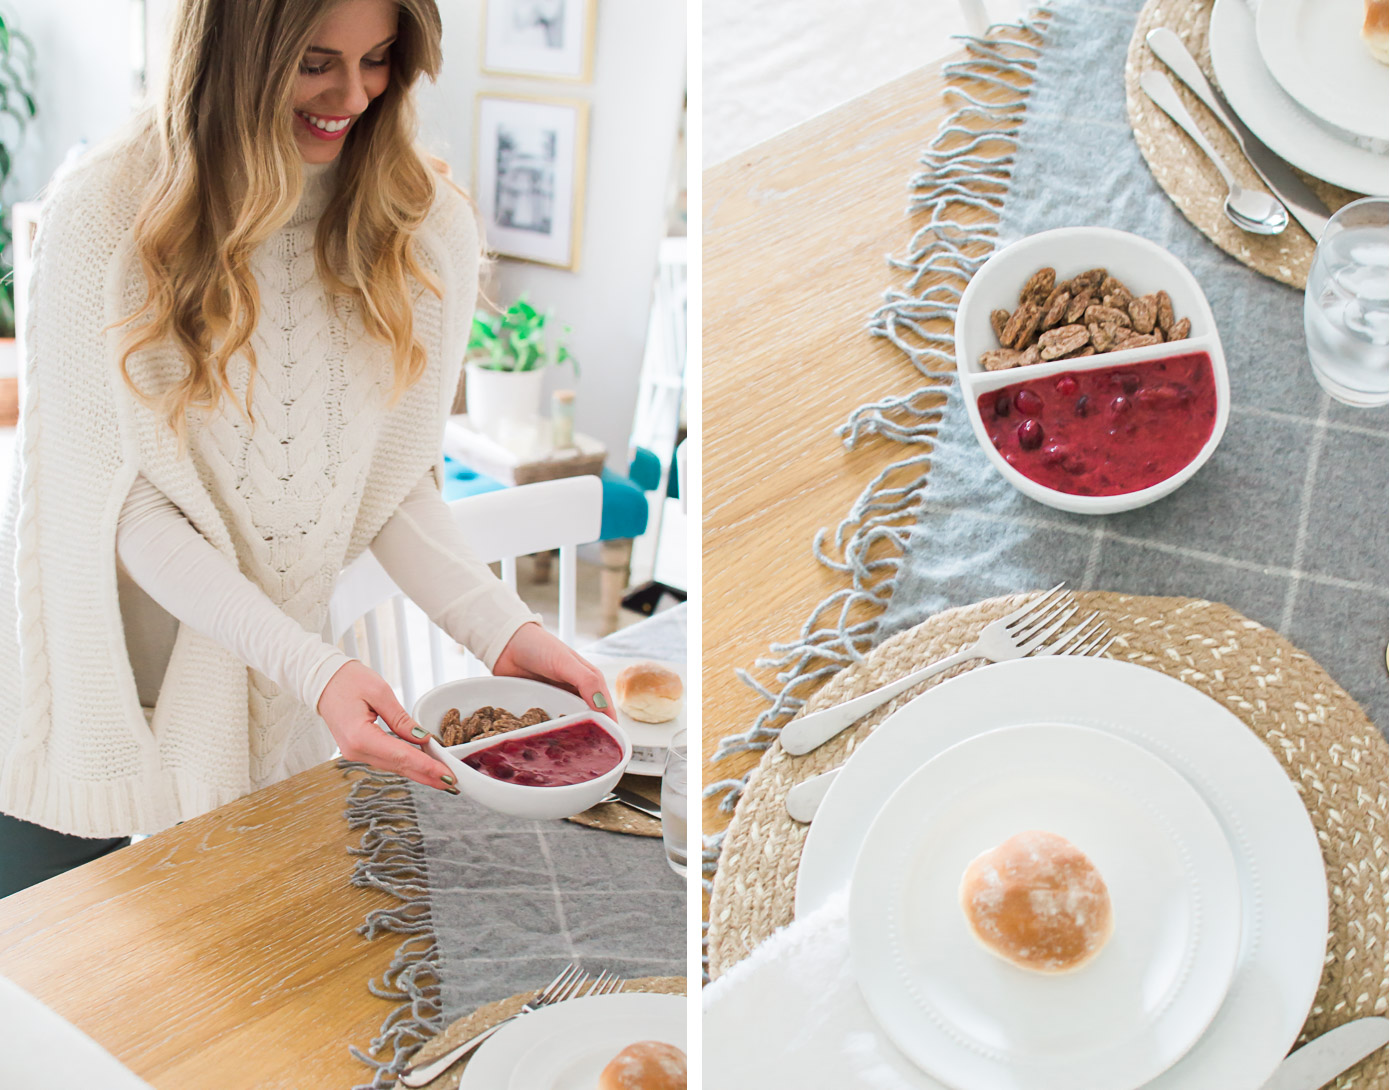 Friendsgiving Tablescape | Feminine Friendsgiving | Louella Reese Life & Style Blog